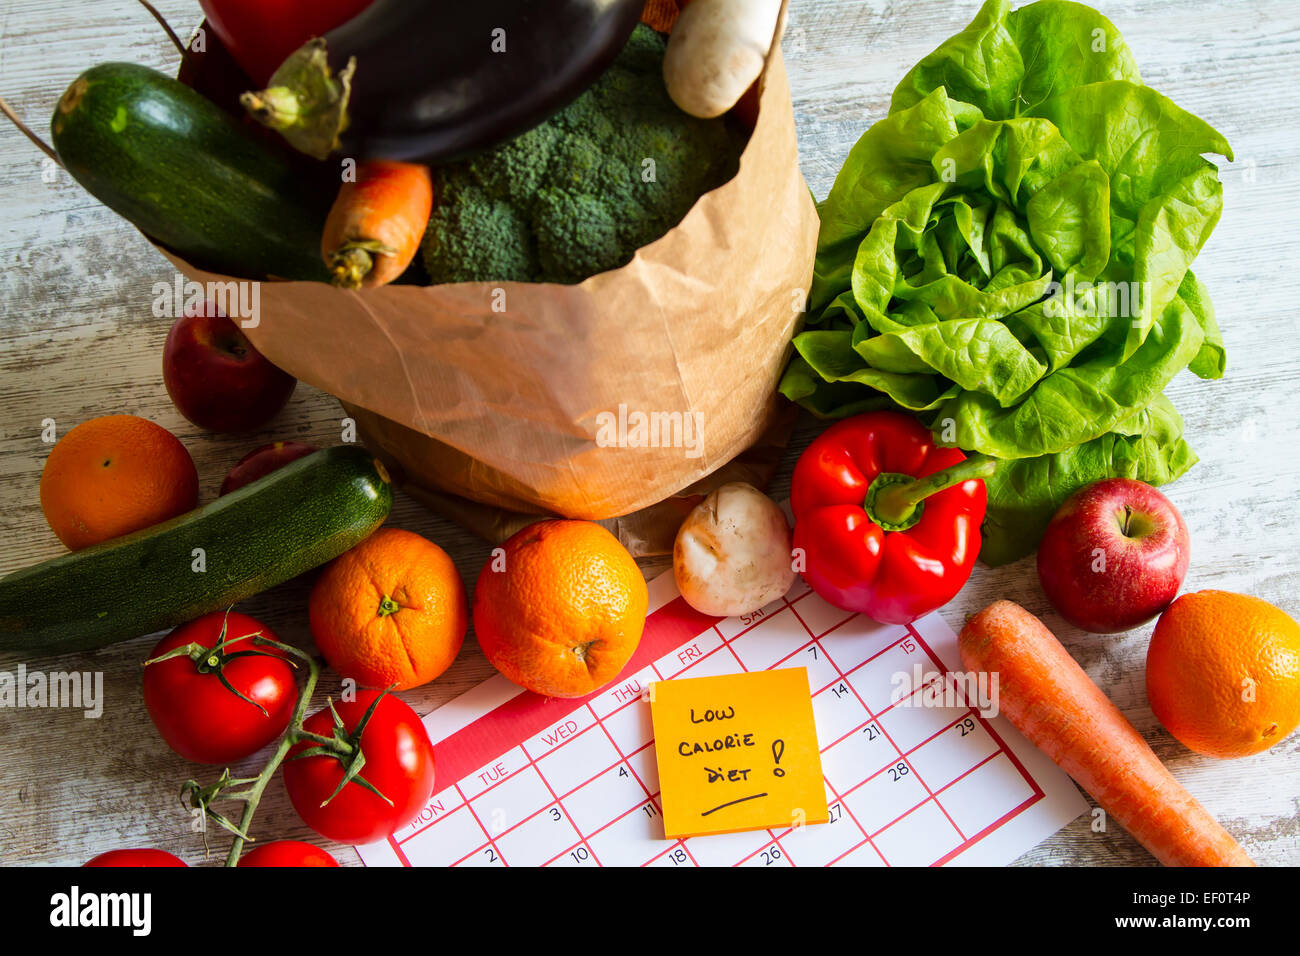 Low calorie diet,  vegetables and fruits - Stock Image